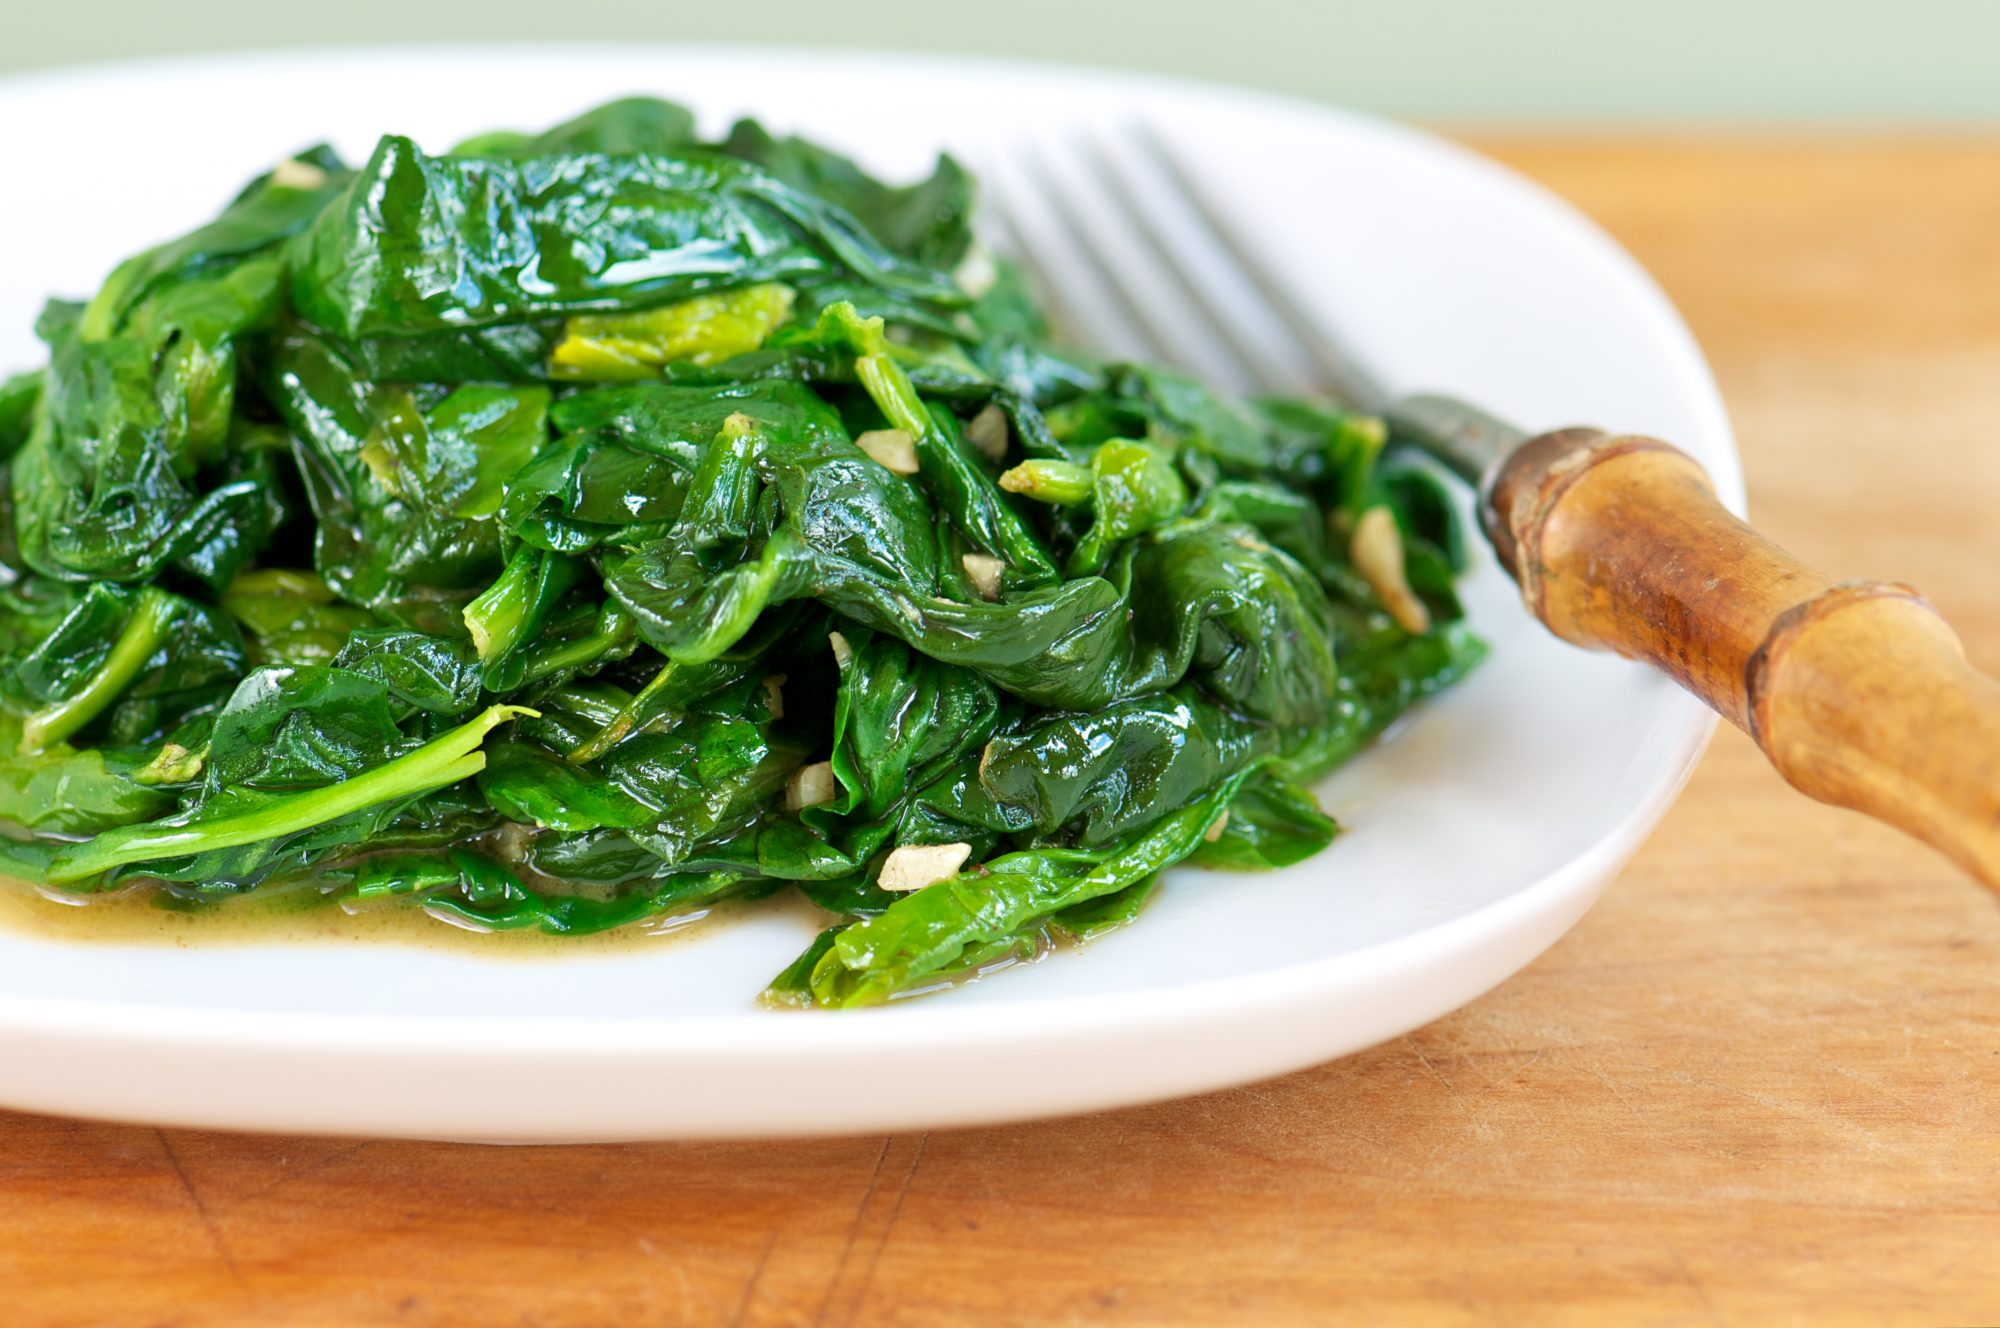 White Plate of Fresh Sauteed Spinach with Garlic on Wood